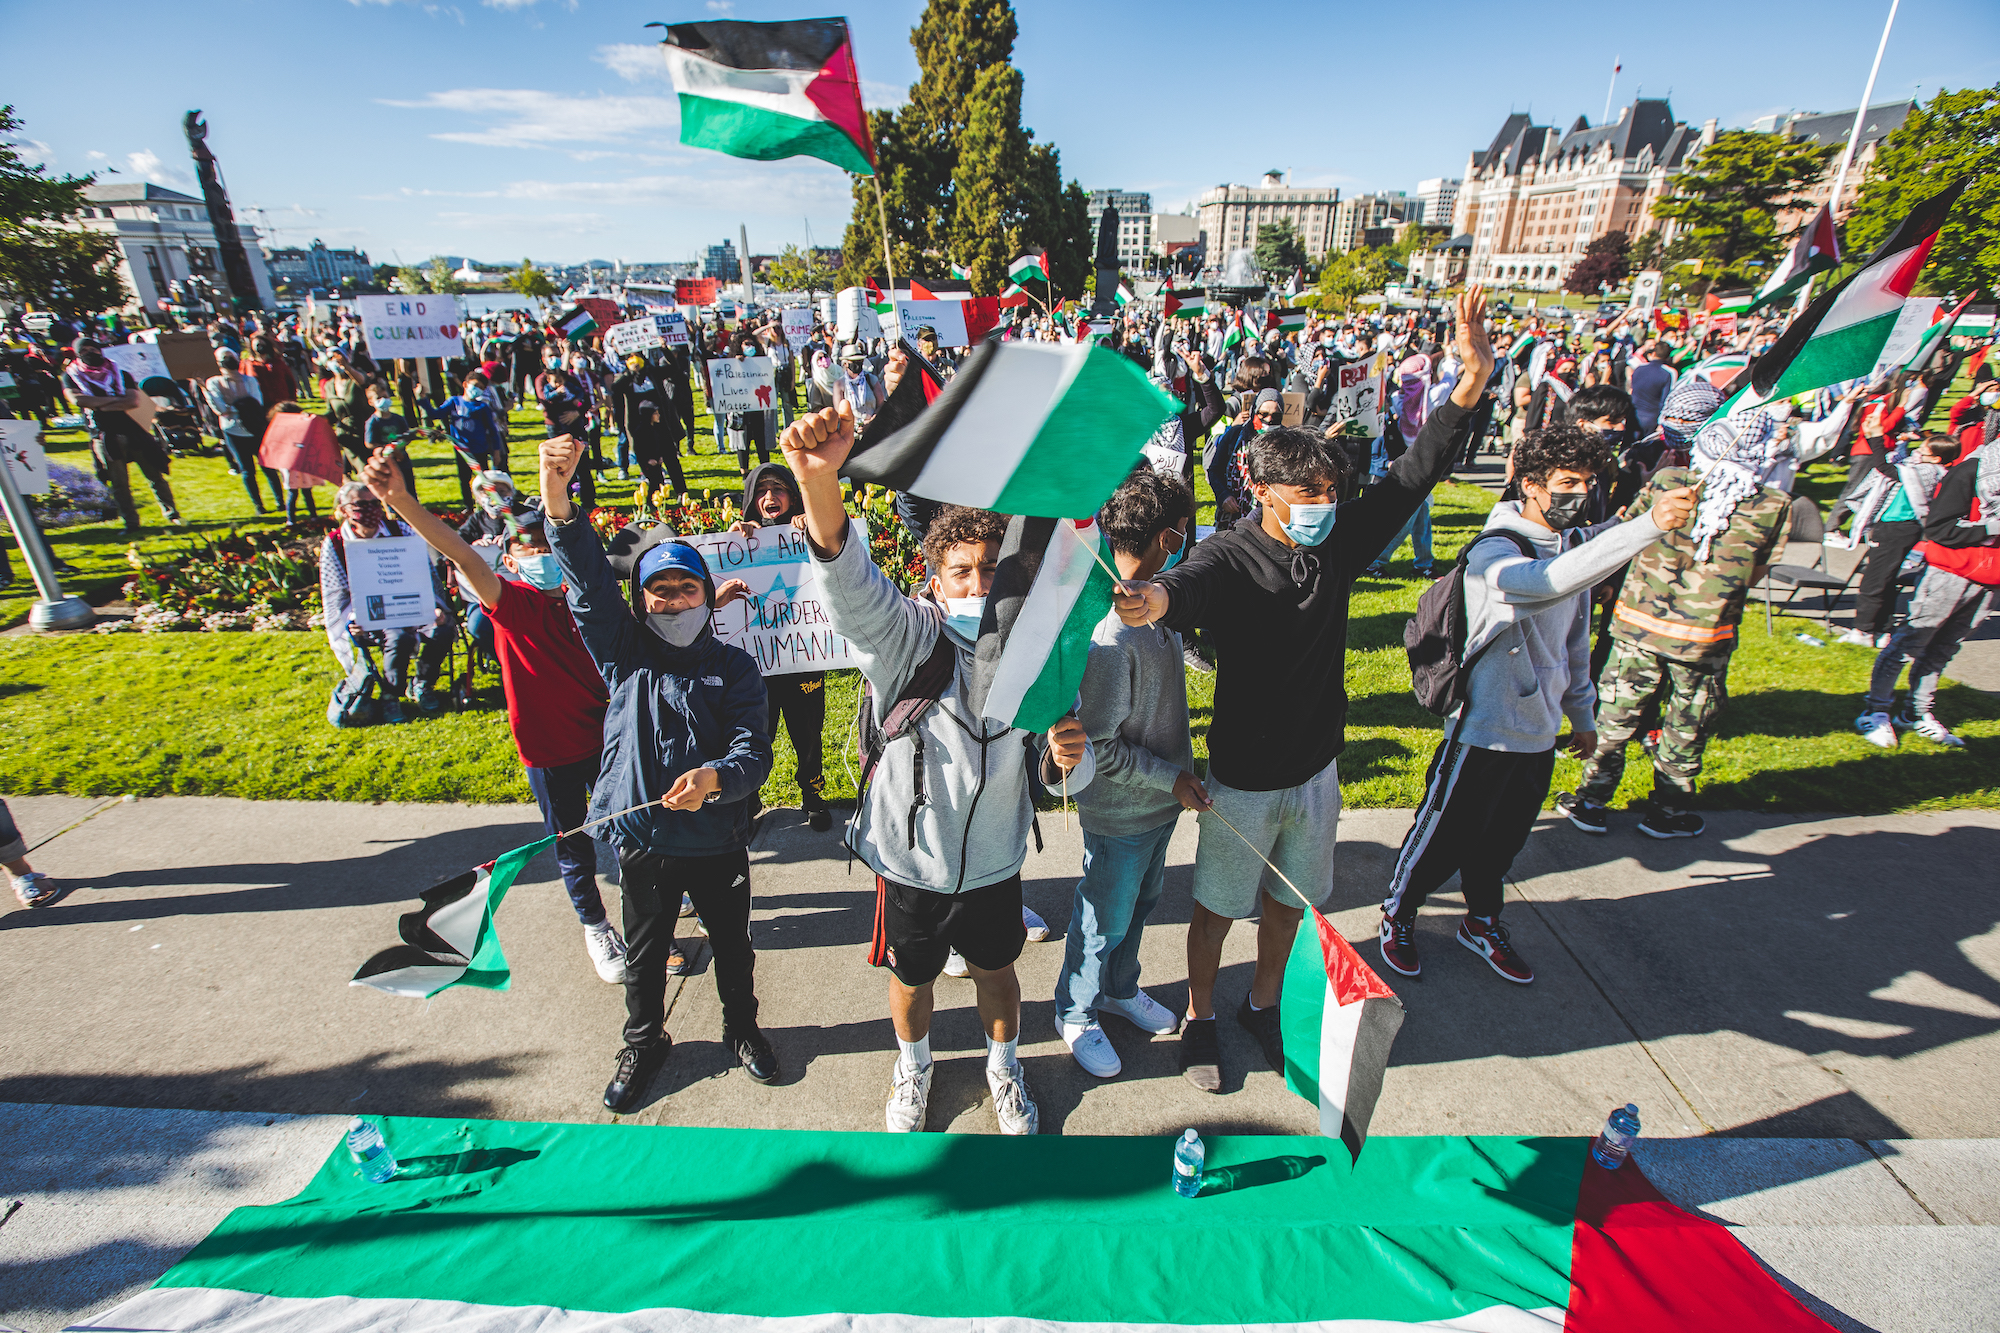 Palestinians in Victoria find comfort in numbers